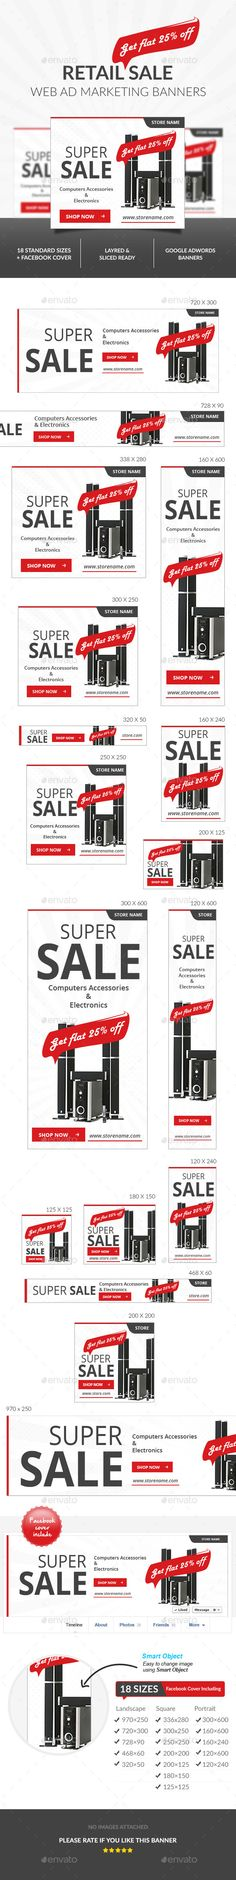 Retail Sale Ad Banners Template PSD | Download: http://graphicriver.net/item/retail-sale-ad-banners-/10159717?ref=ksioks